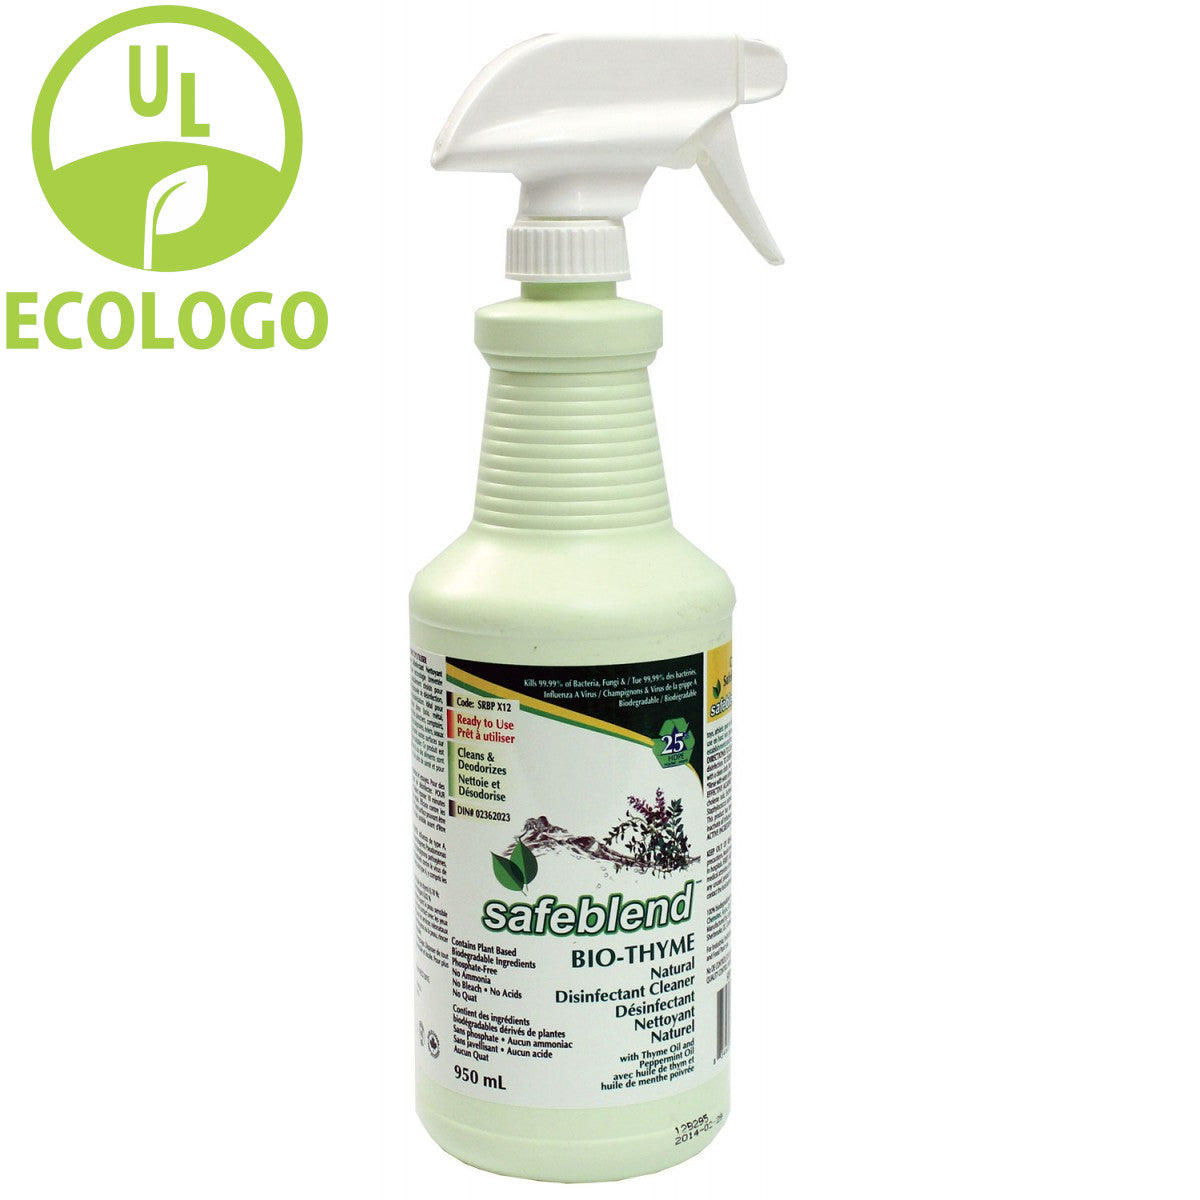 Safeblend Bio-Thyme EcoLogo Cleaner and Disinfectant - 950ml - Super Vacs